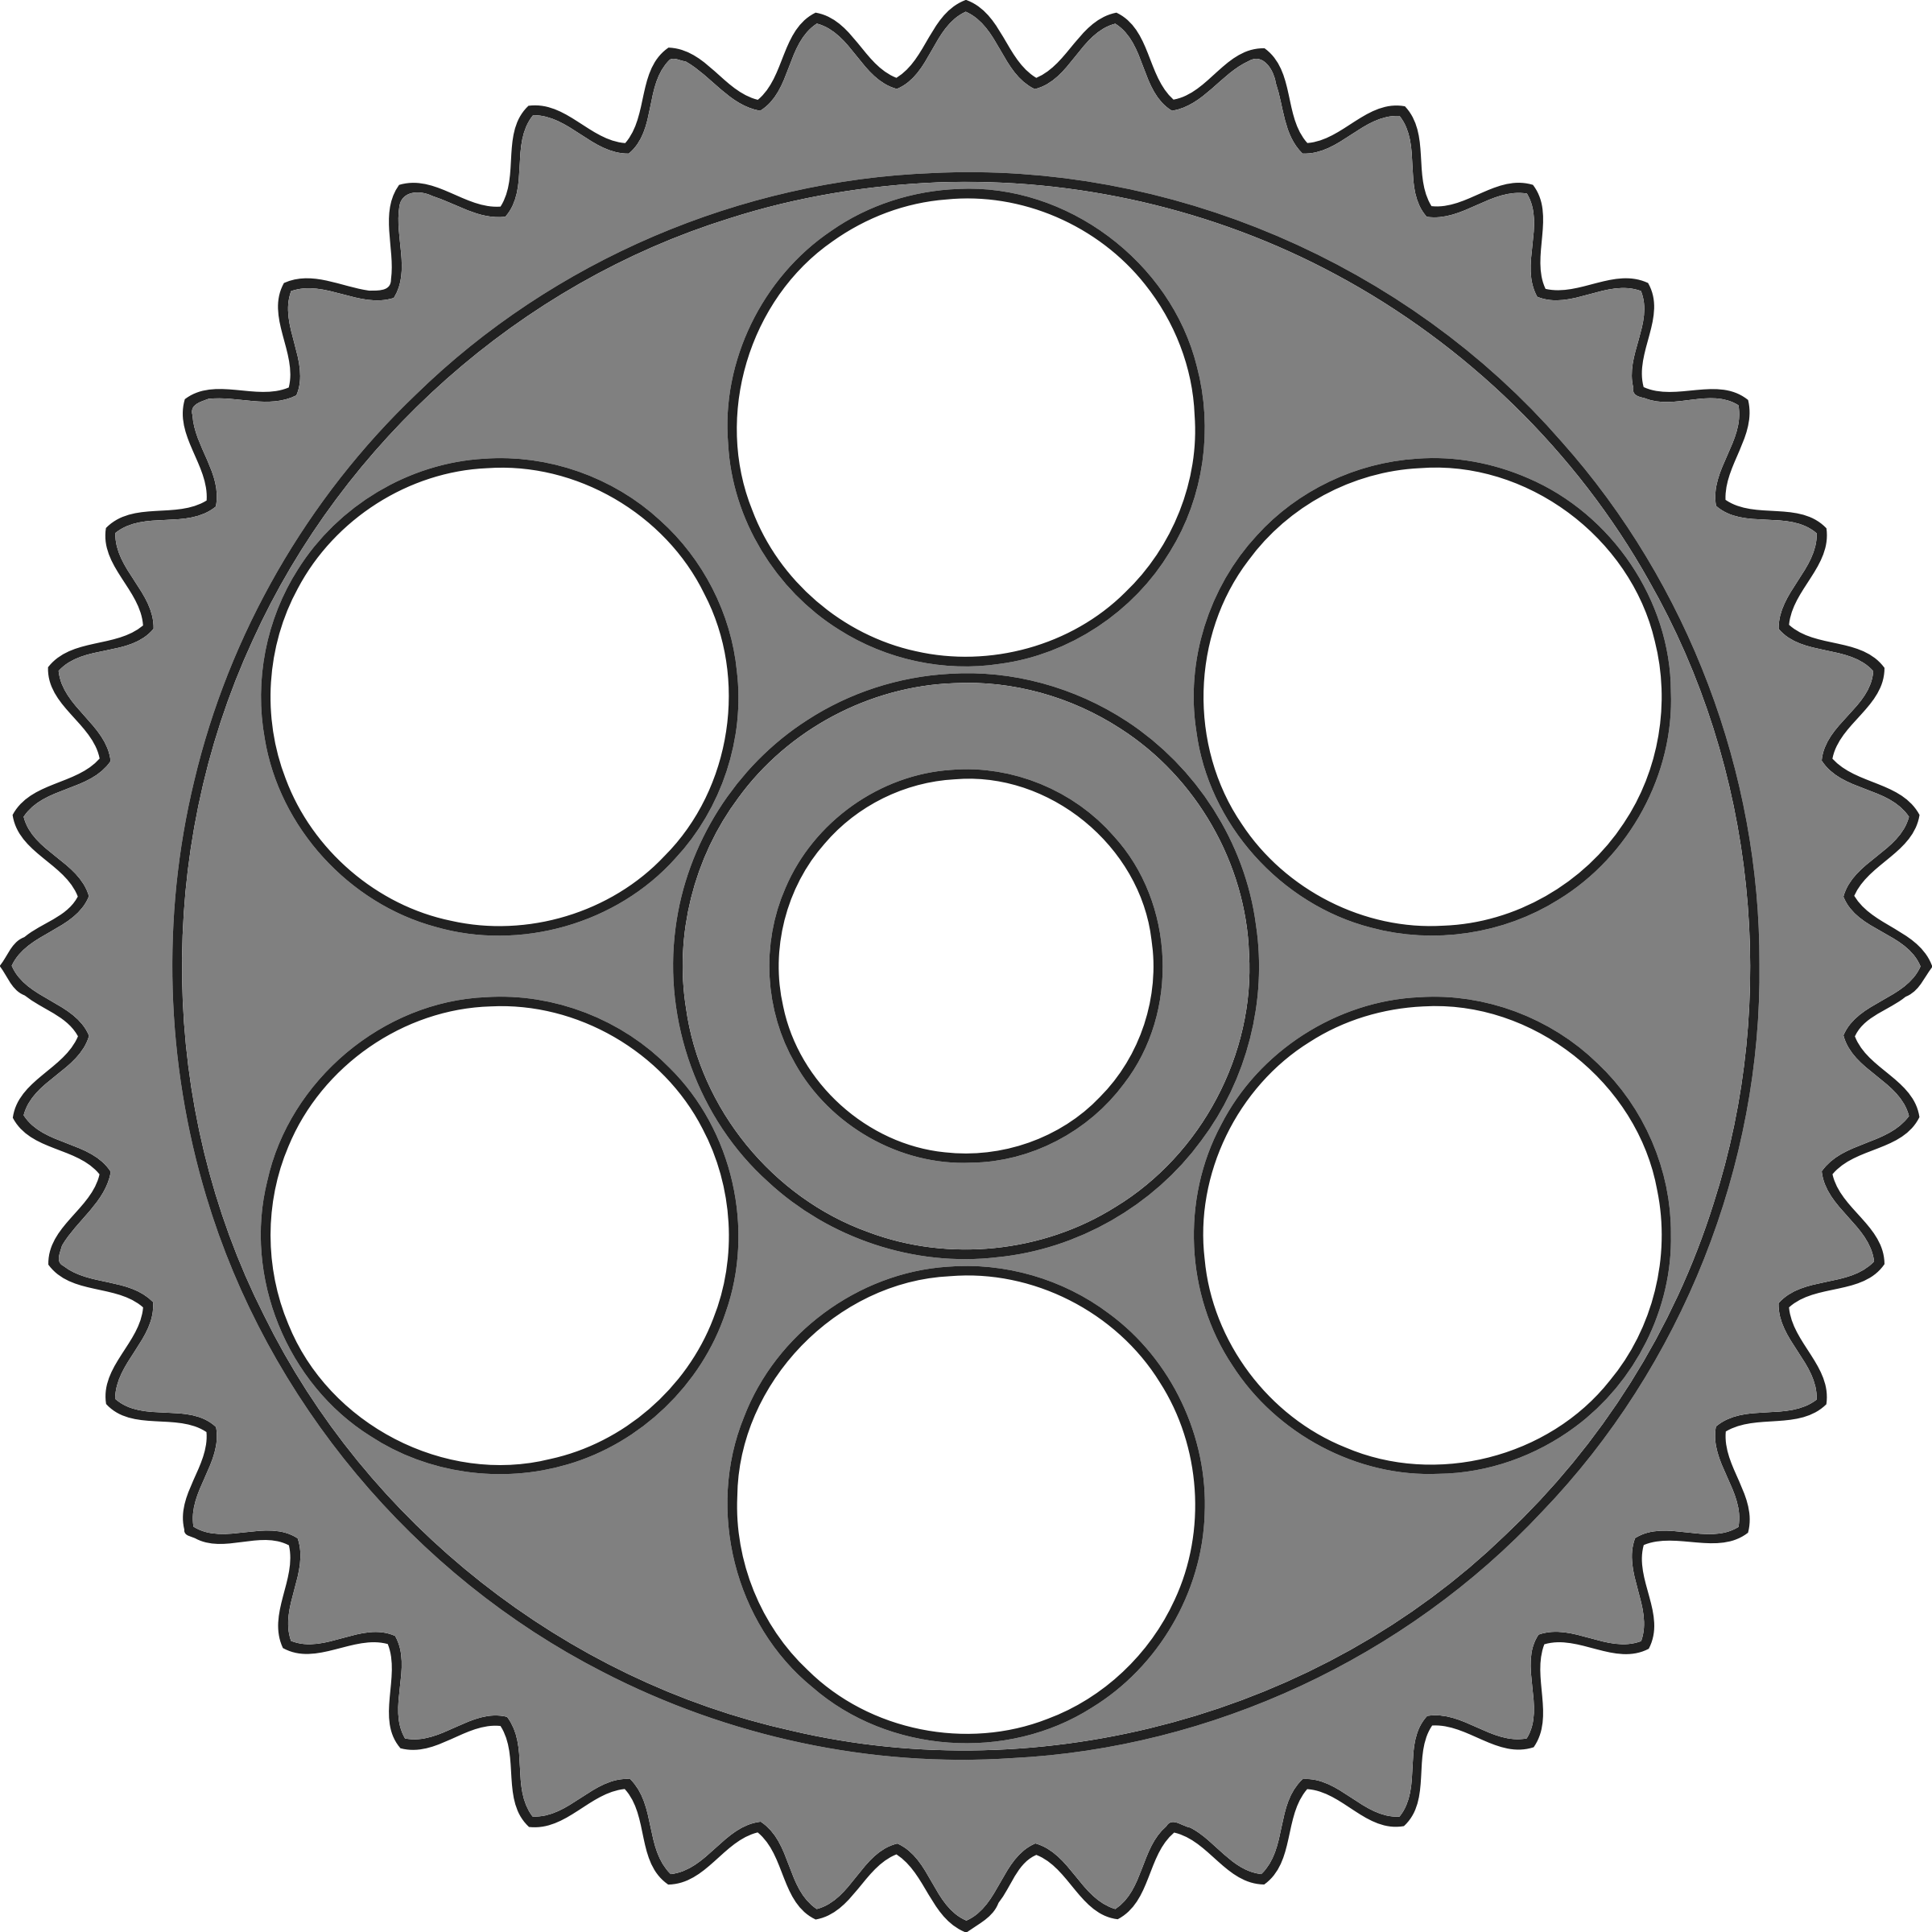 50-tooth gear with circular holes by Firkin